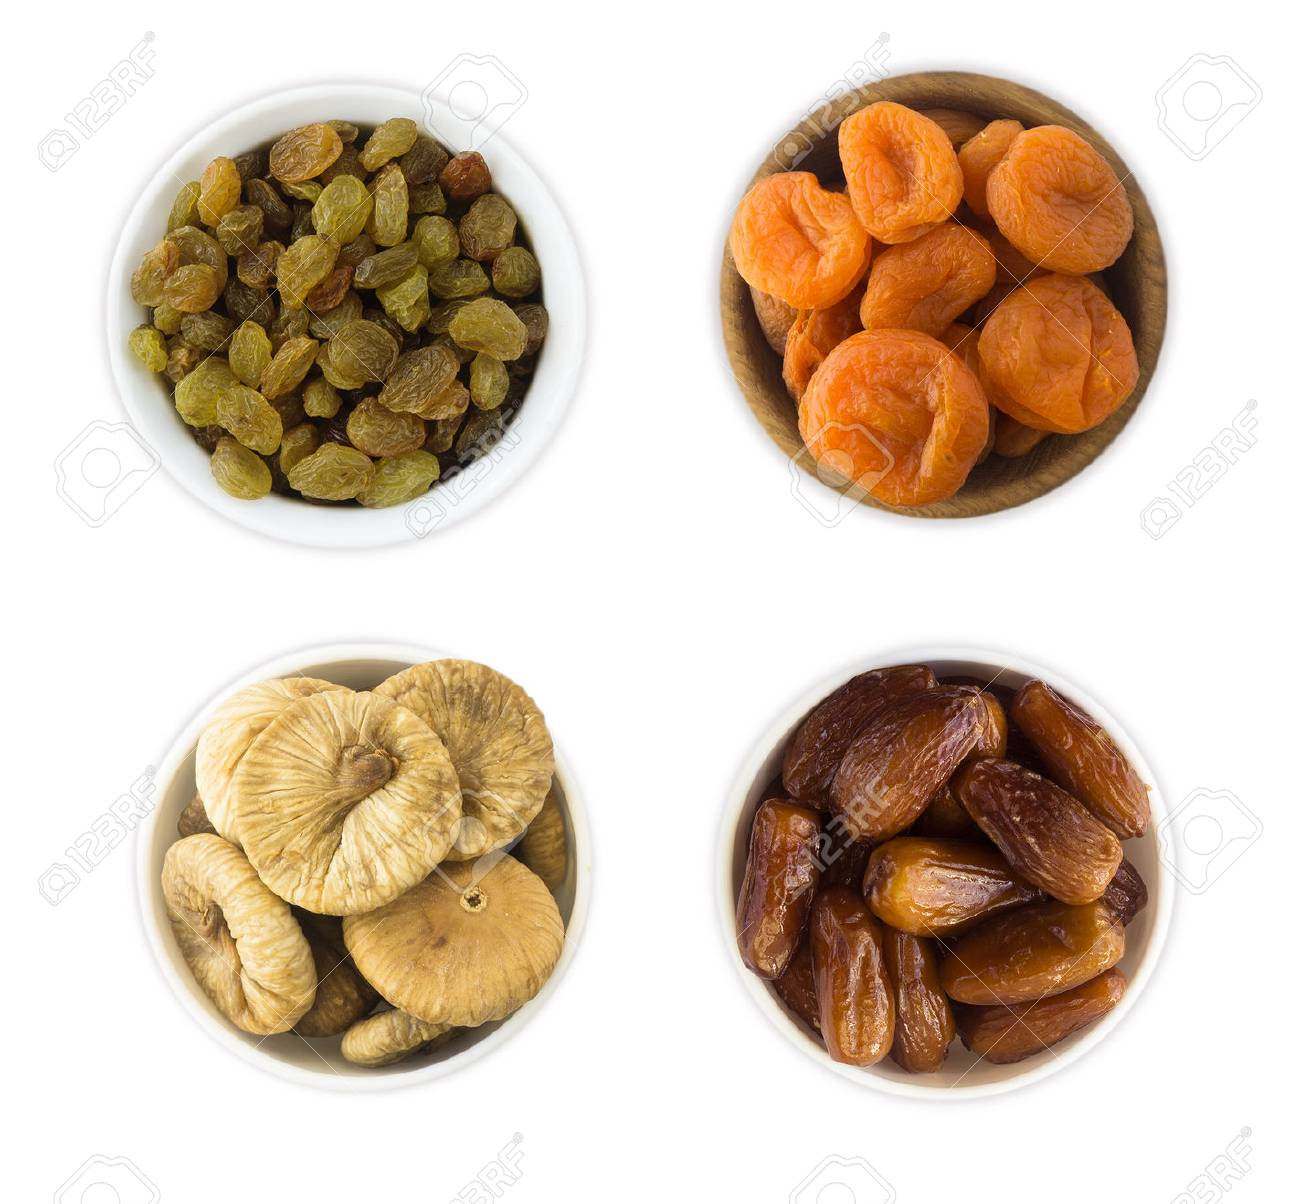 Collage of different dried fruits  Raisins, dates, dried apricots,